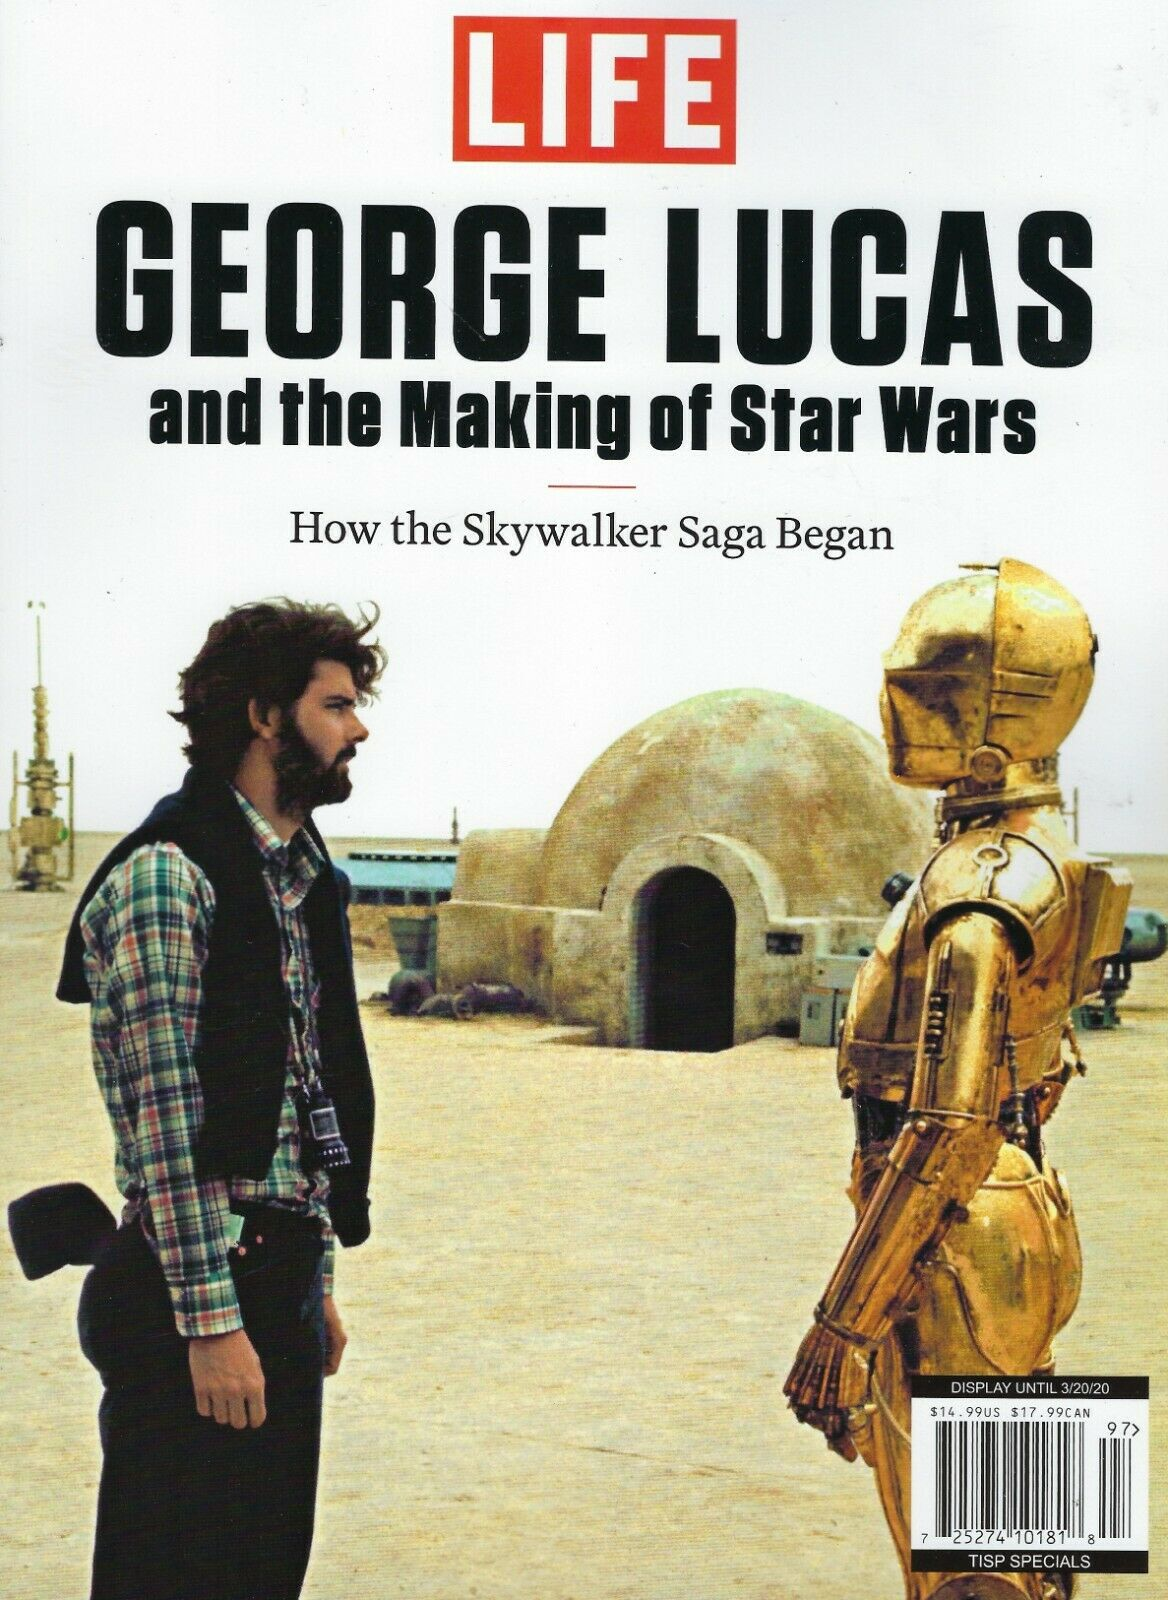 Life: George Lucas and the Making of Star Wars